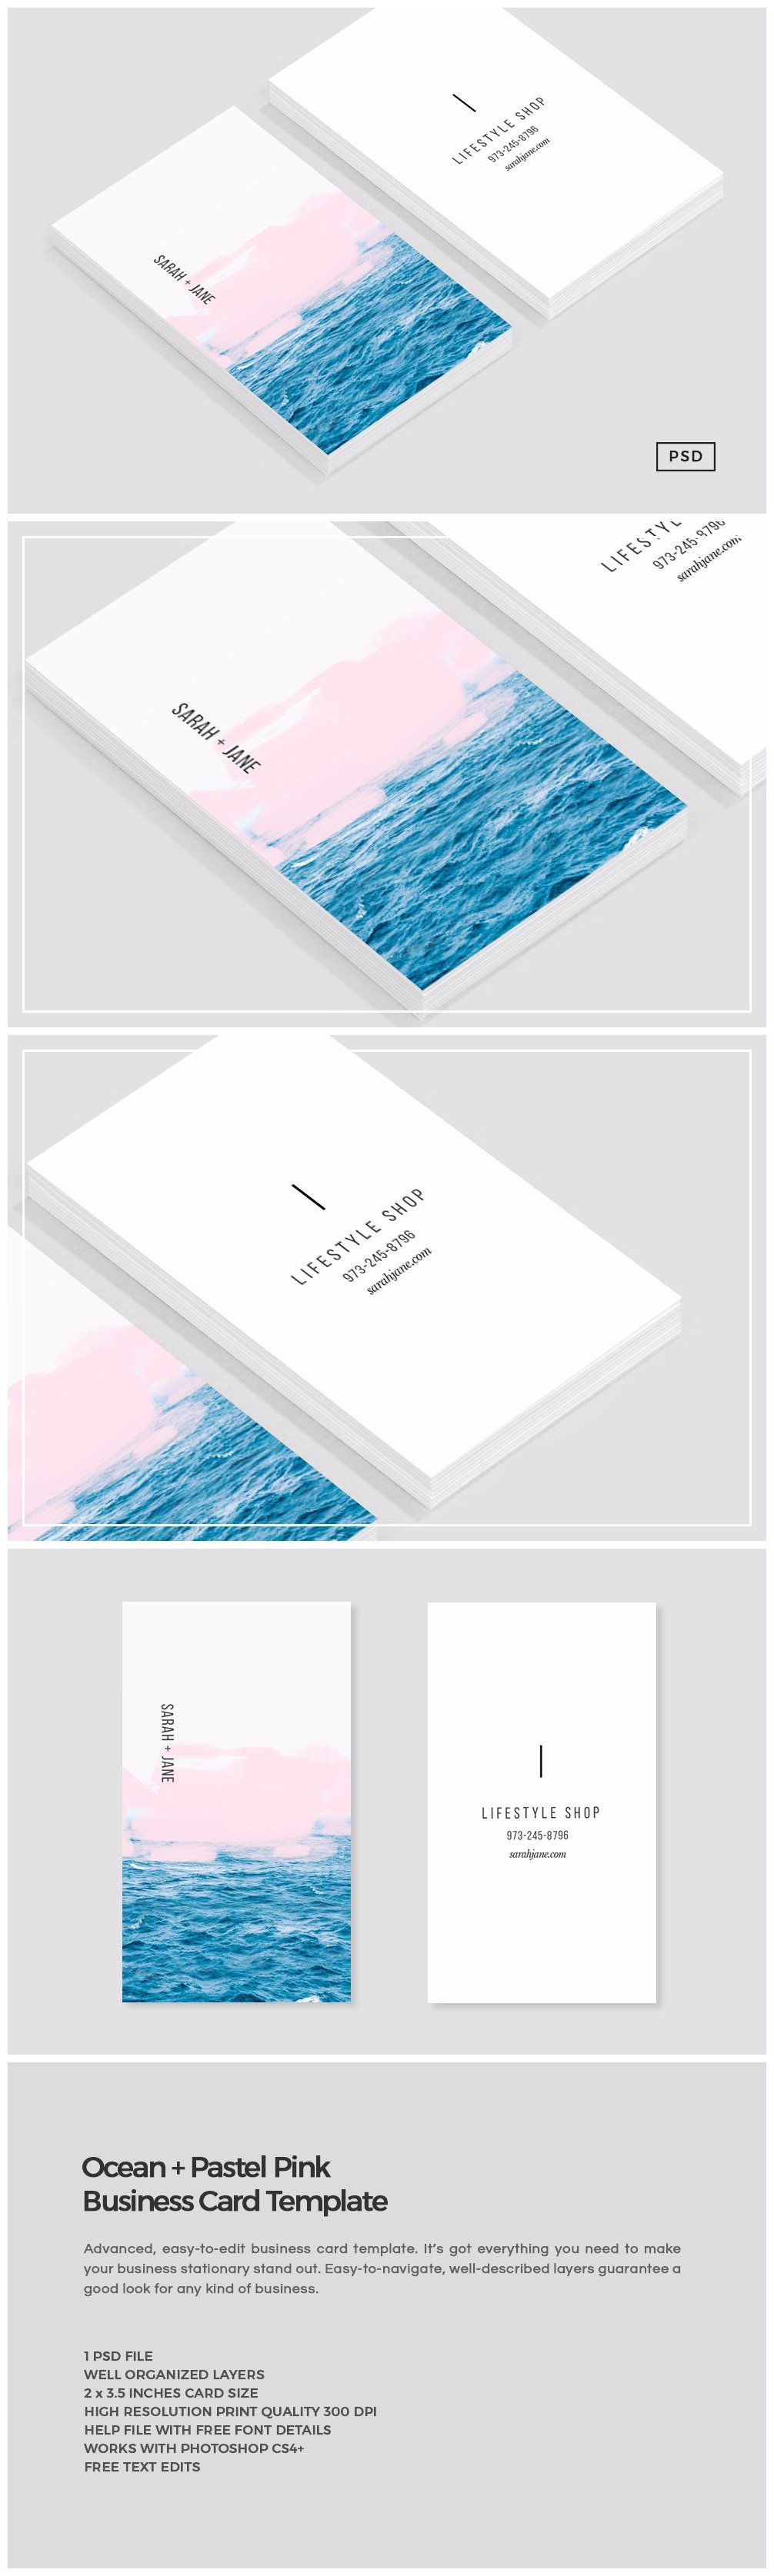 Ocean pink business card template business card templates ocean pink business card template business card templates creative market reheart Images